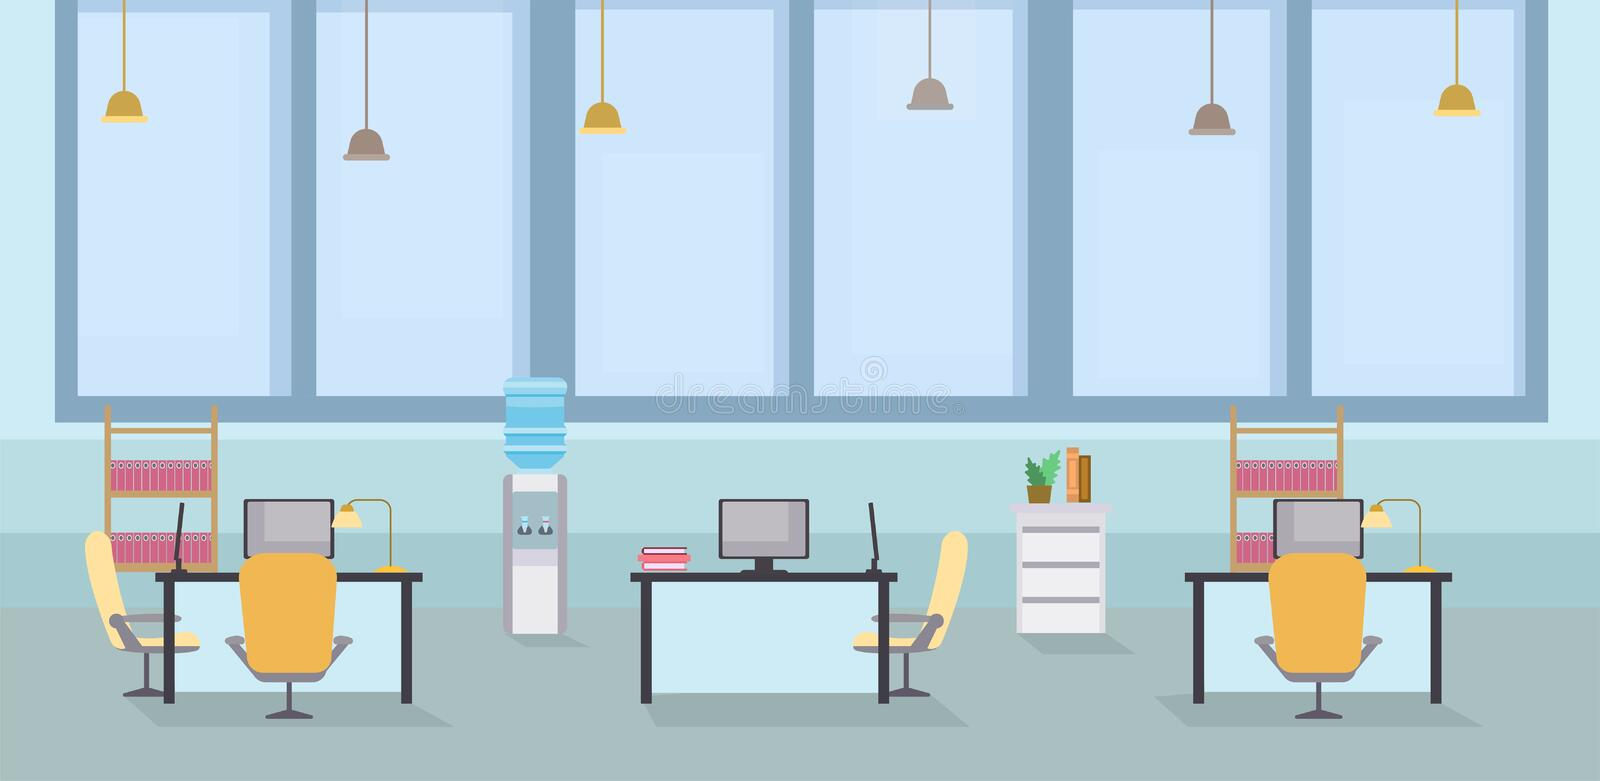 Empty office interior cartoon vector illustration. Coworking open space, tables with chairs in workplace, computer royalty free illustration